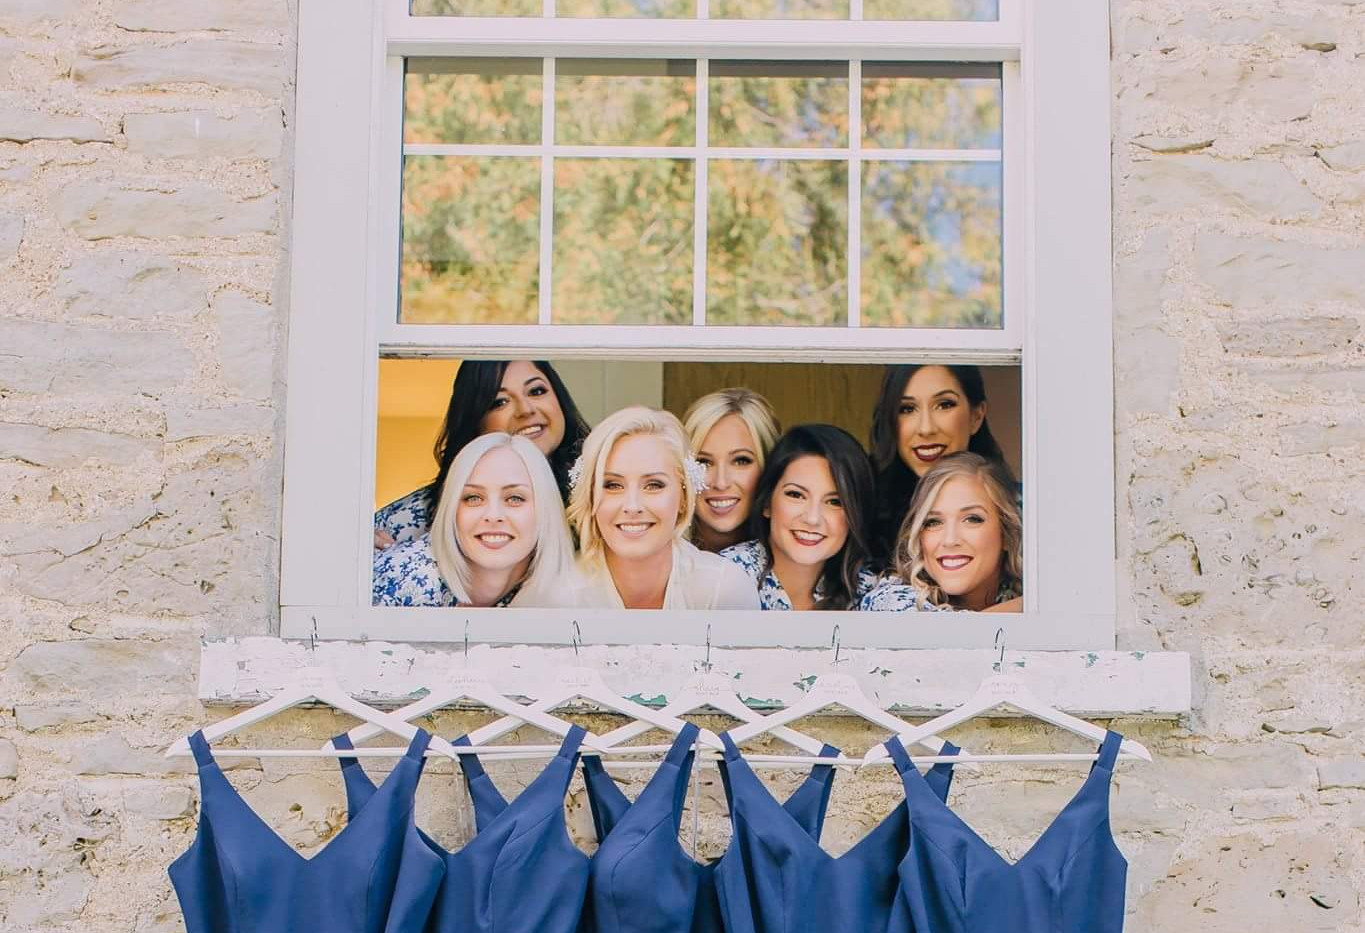 Group photo of bridal party looking out window of farmhouse with their bridesmaid dresses hung below them